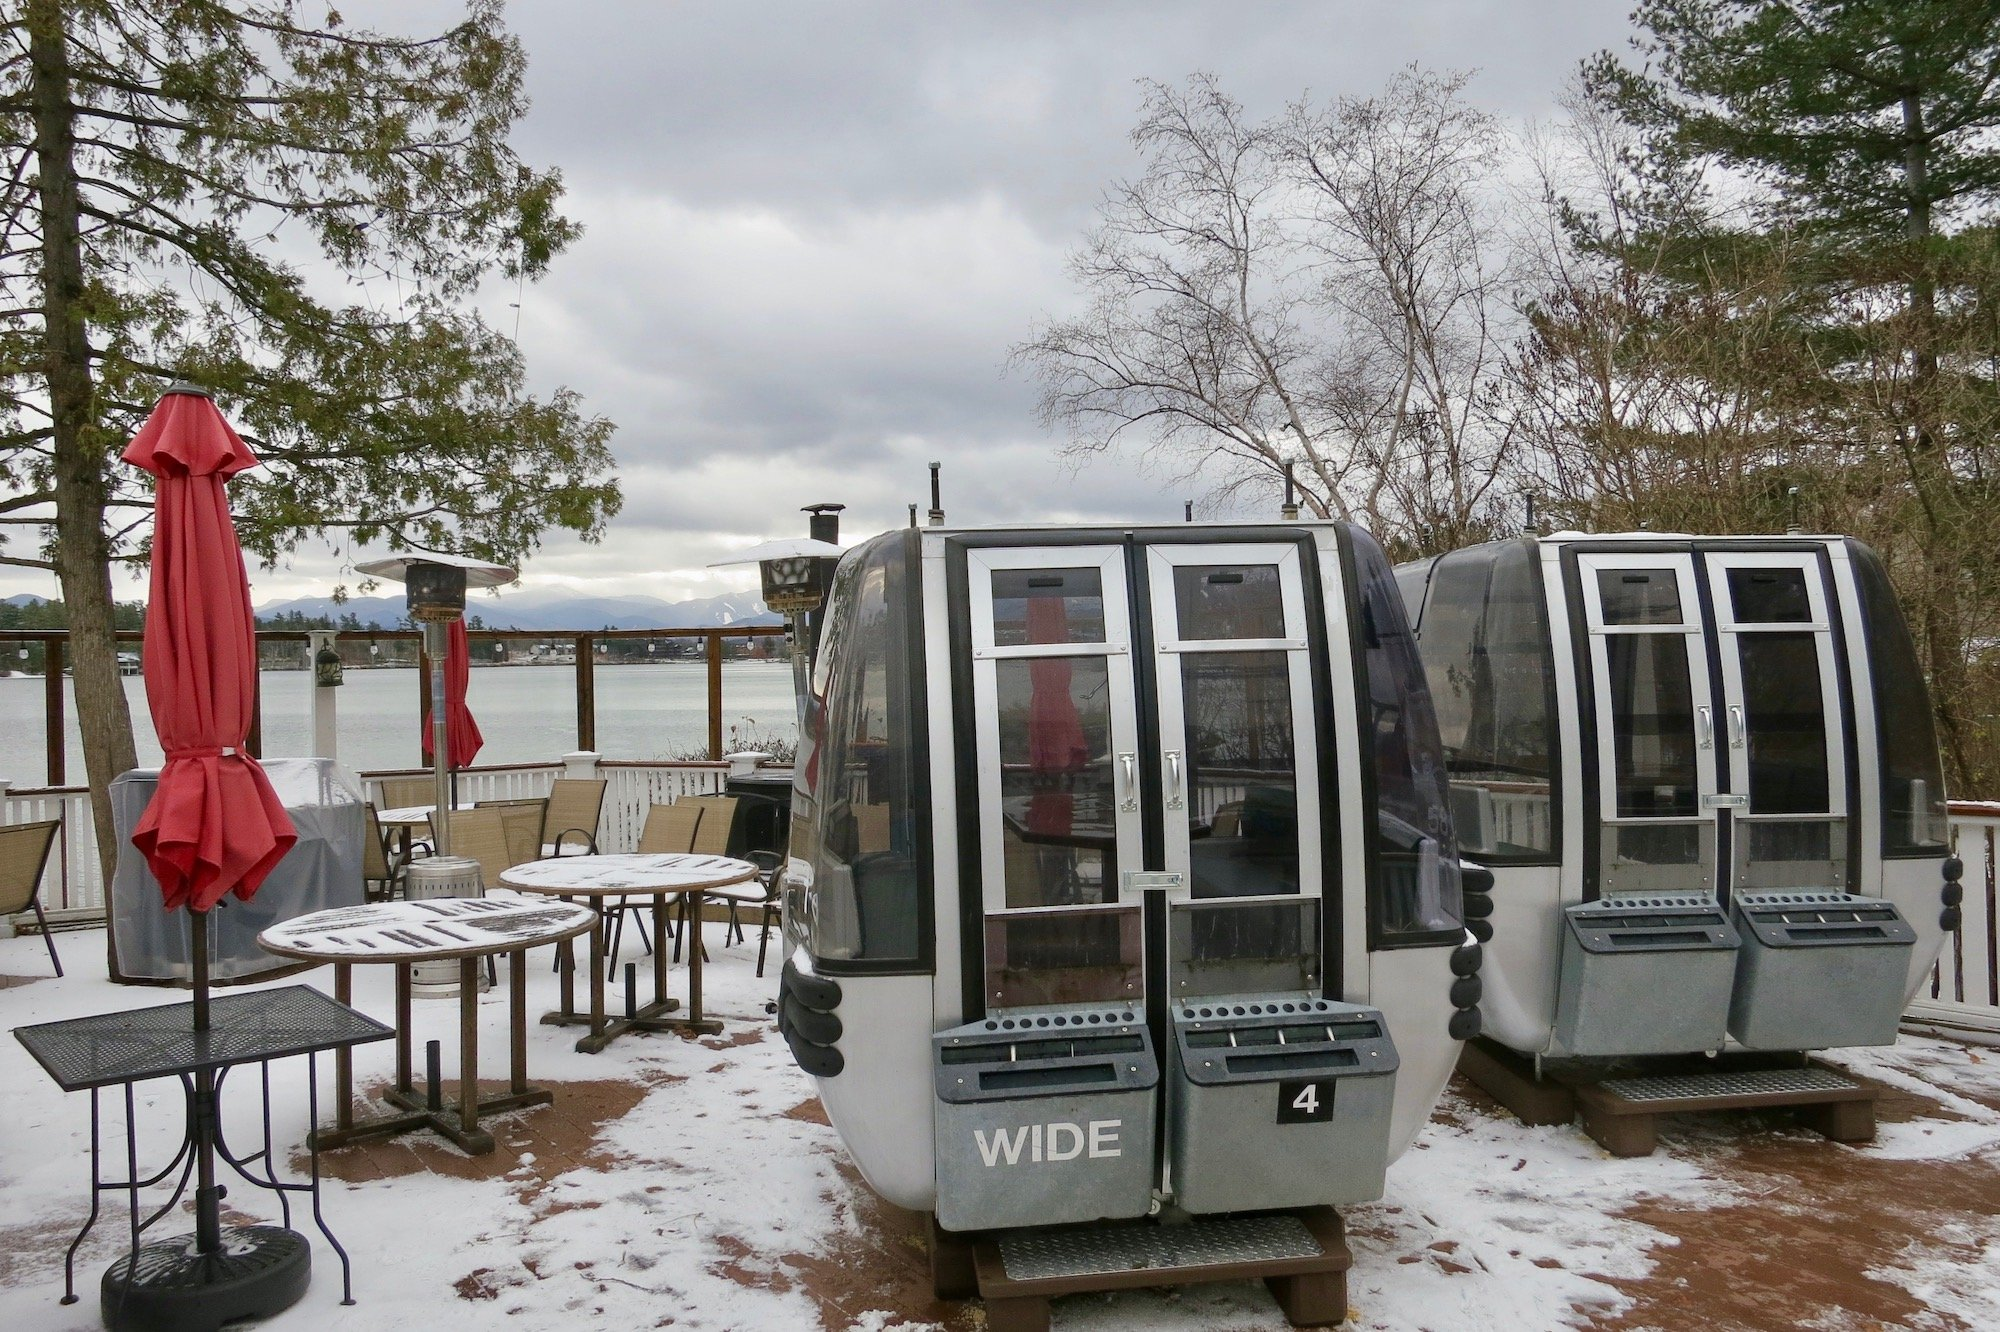 A snowy outdoor eating area with two ski gondolas